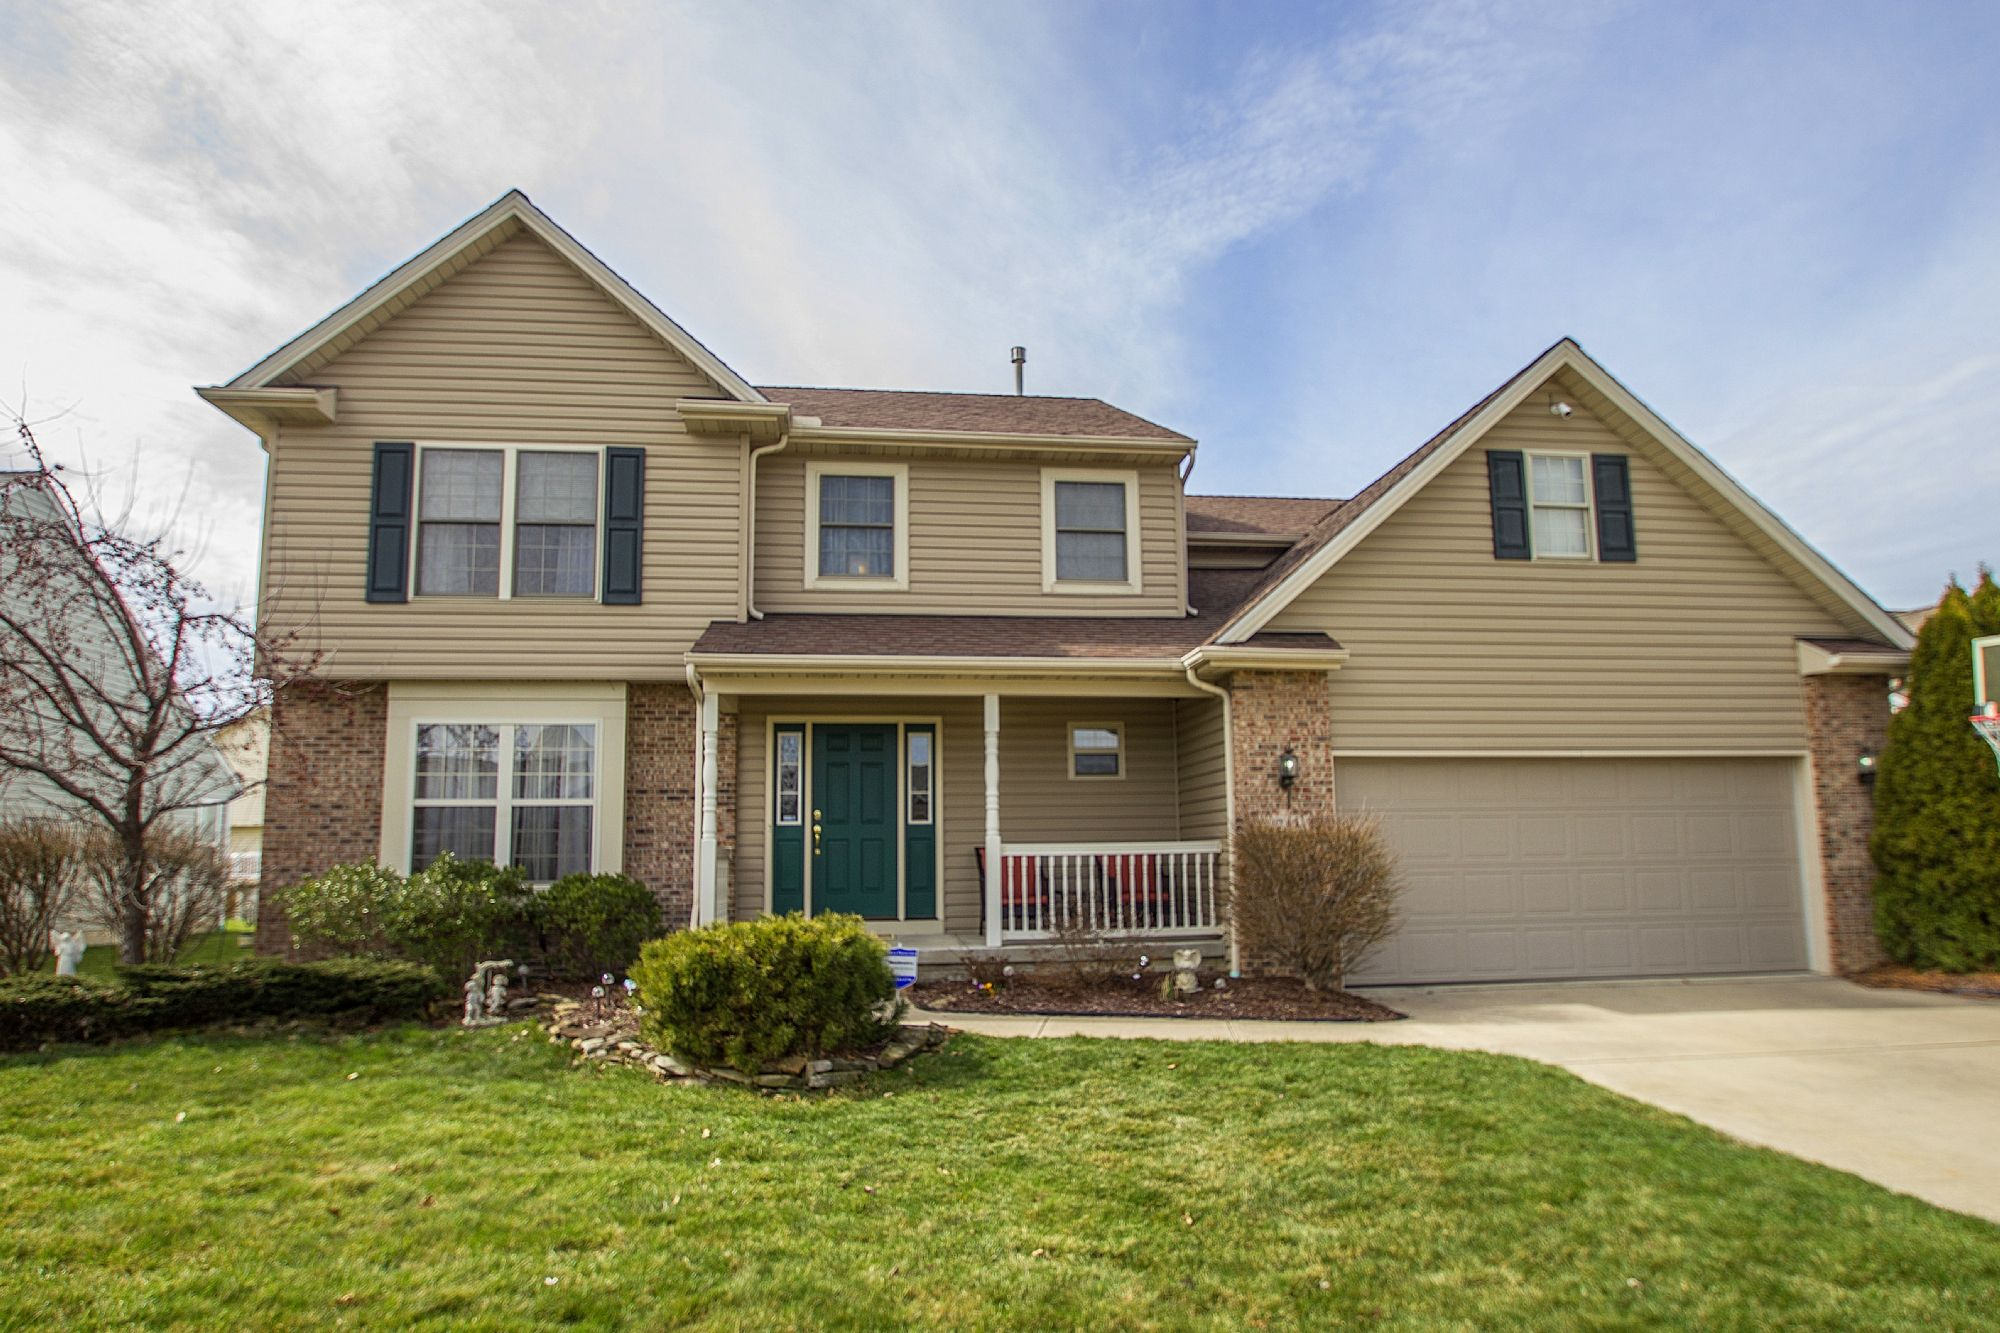 Want to have your own a home with a personal #resort style backyard? Check out our new 4 Bedrooms, 2.5 bathrooms Baths Colonial in #Elyria to see what you're missing!   Contact us for a private showing of this private home paradise!   (http://tour.circlepix.com/home/FKCJ6W)